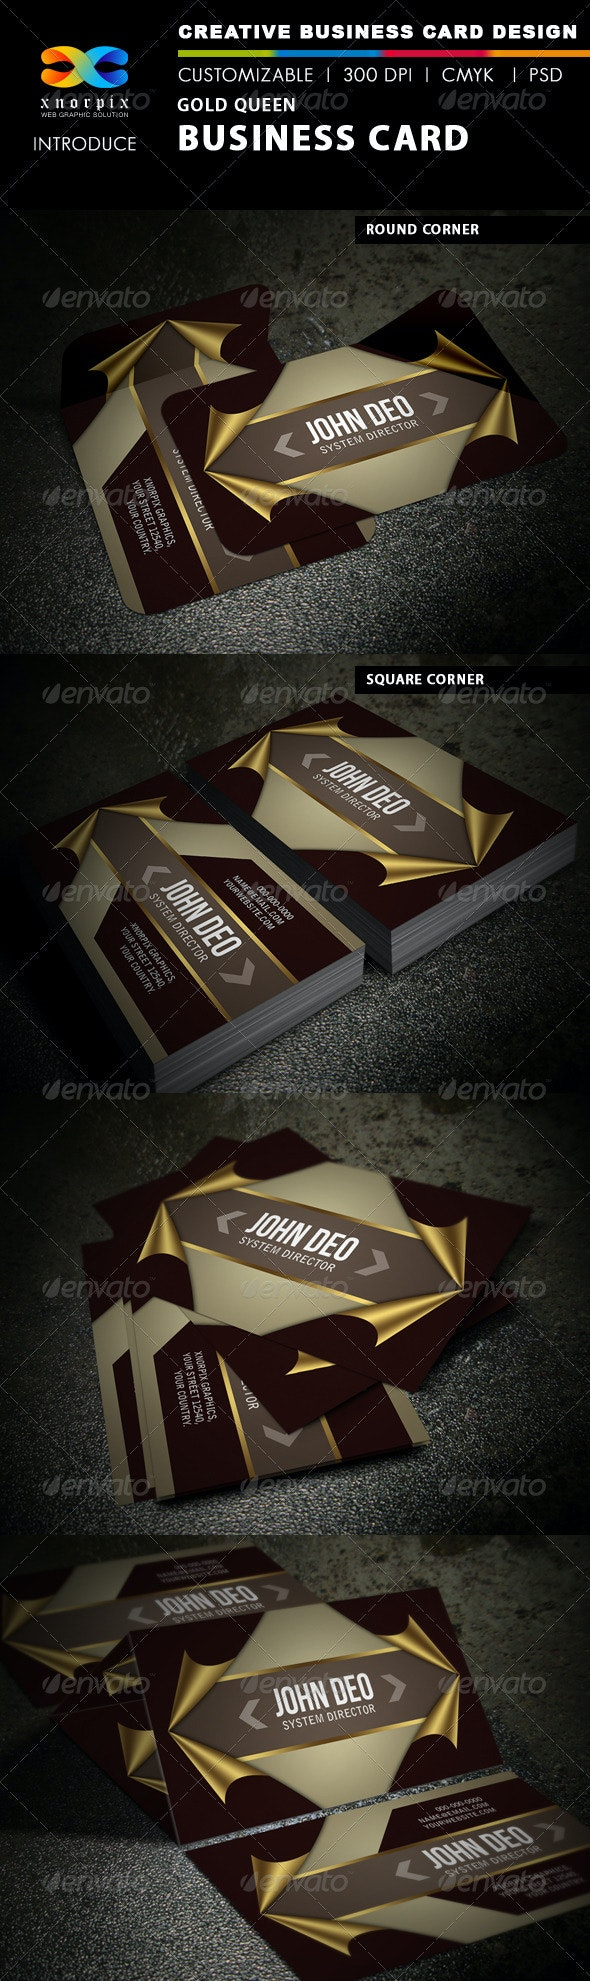 Gold Queen Business Card - Creative Business Cards